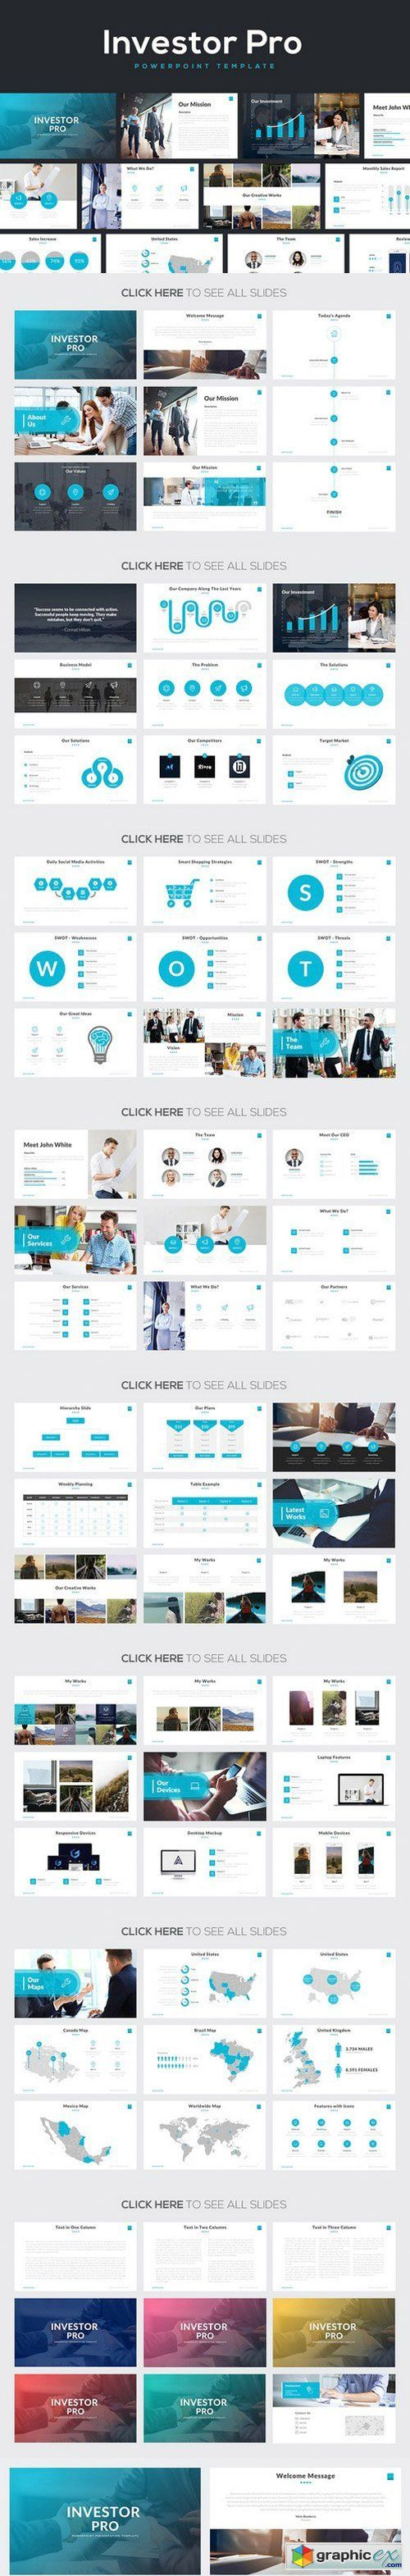 25 best powerpoint template images by christian arreola on investor pro powerpoint template toneelgroepblik Image collections